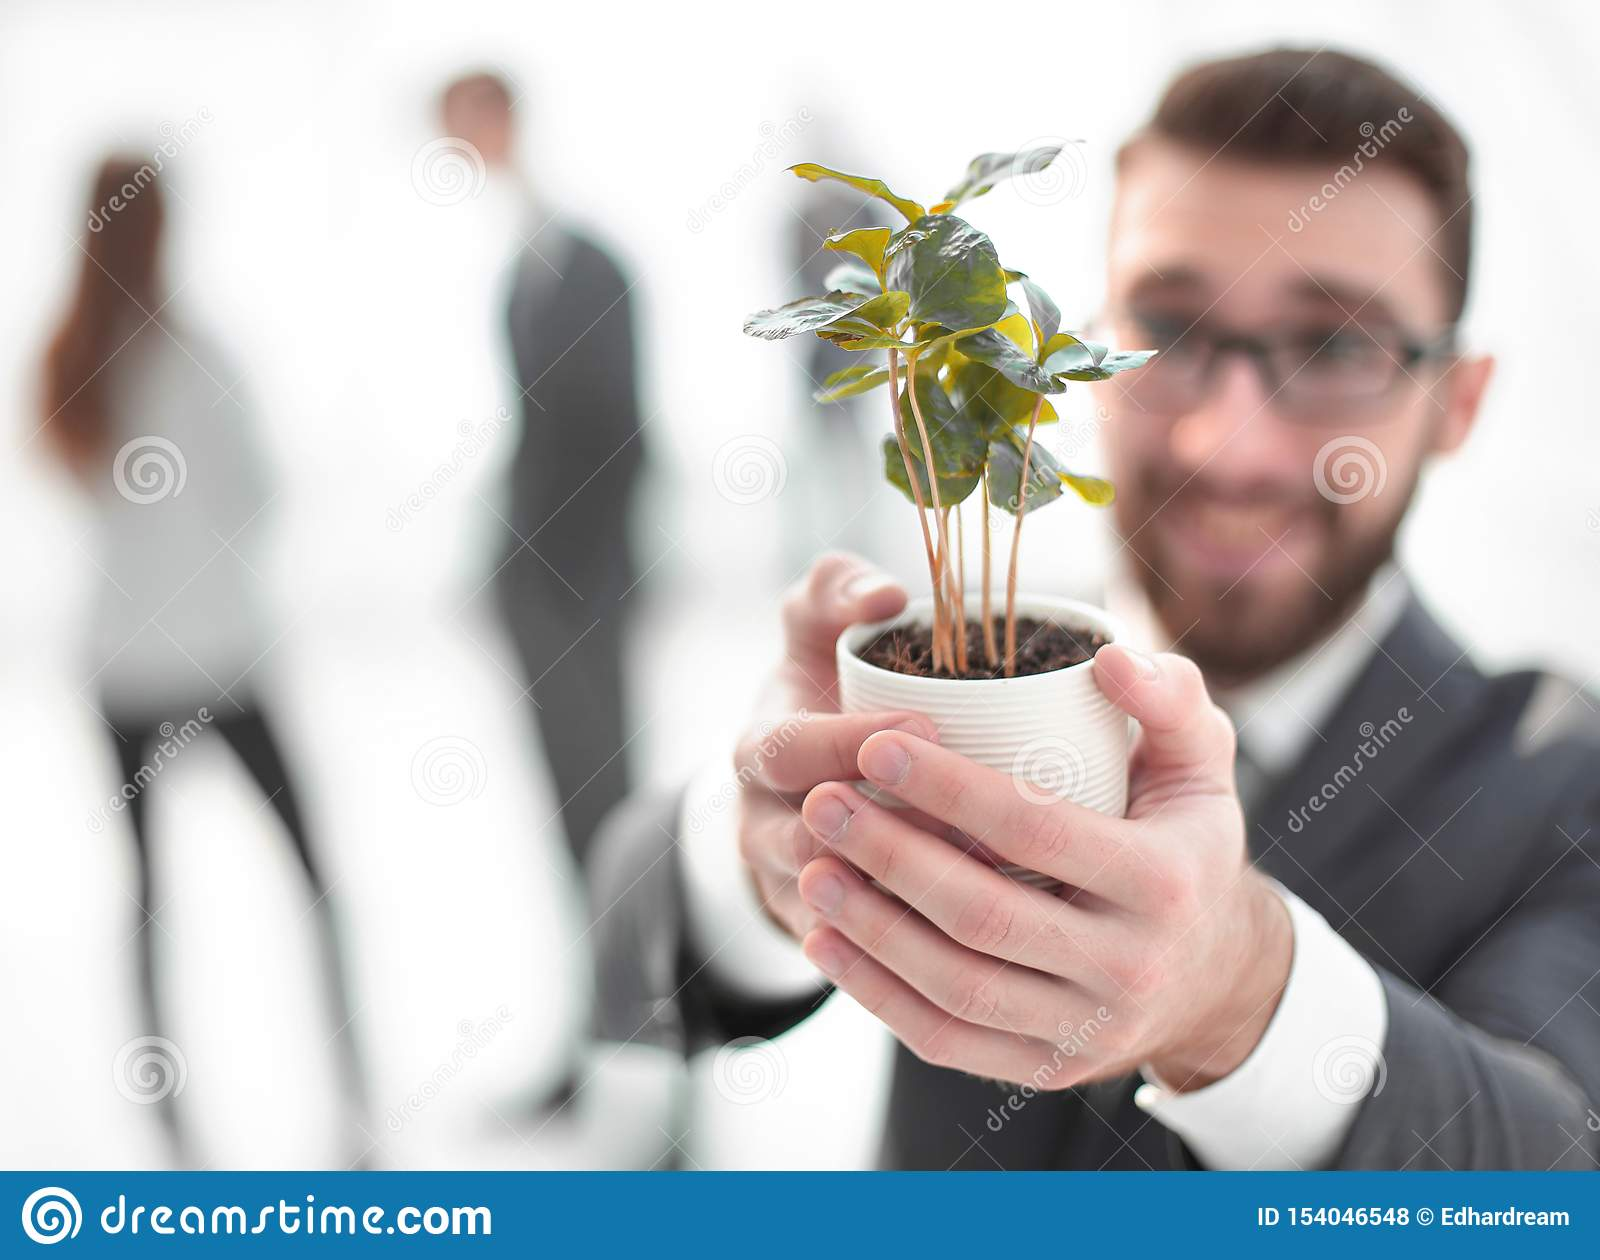 Smiling businessman shows green young sprout